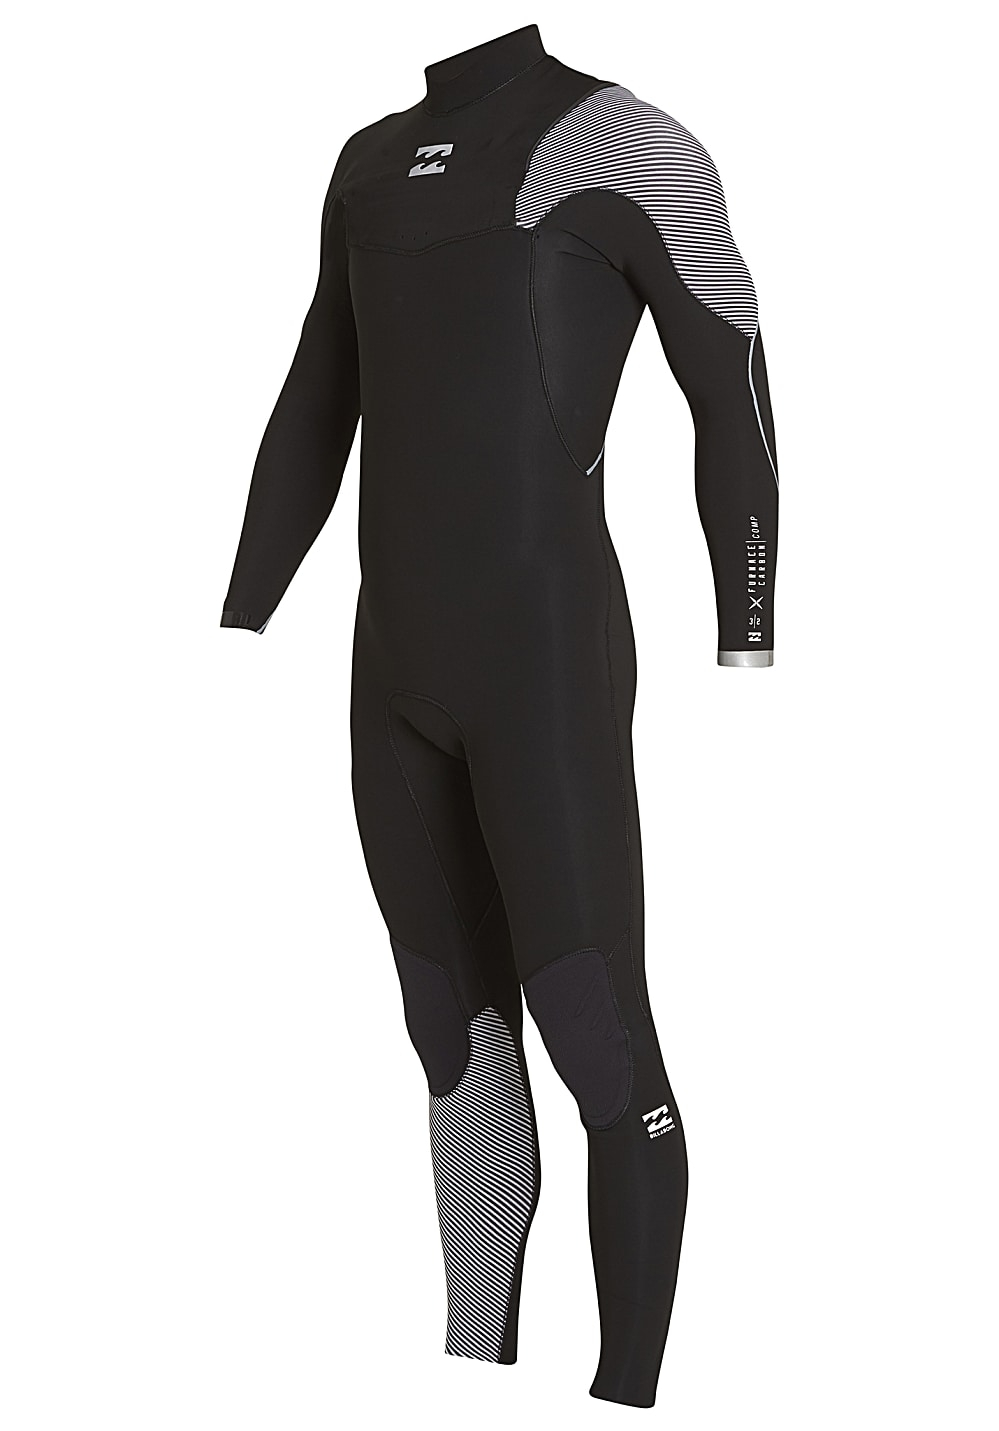 Billabong Furnace Carbon Comp 4/3 Chest Zip Full Suit 2019